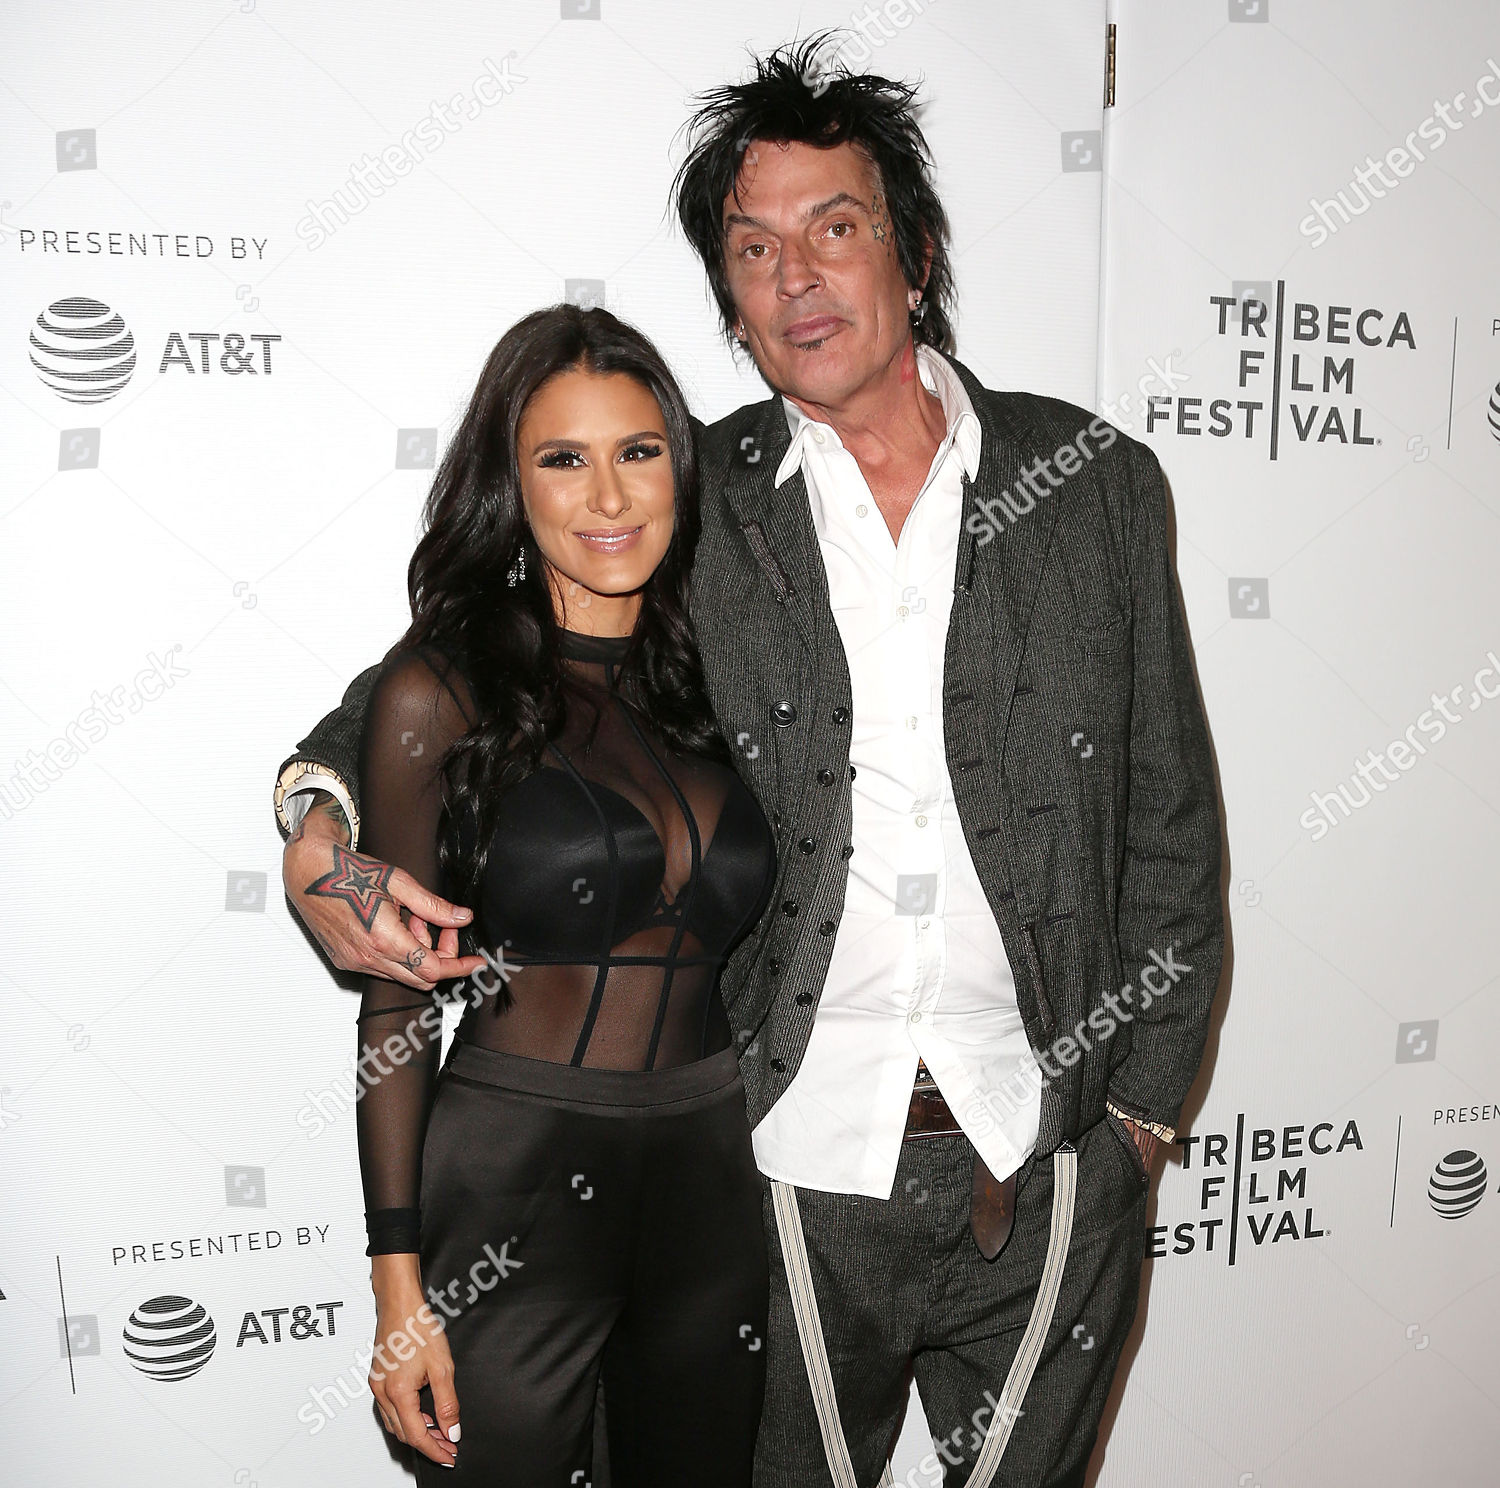 25 Best Memes About Tommy Lee: Brittany Furlan Tommy Lee Editorial Stock Photo